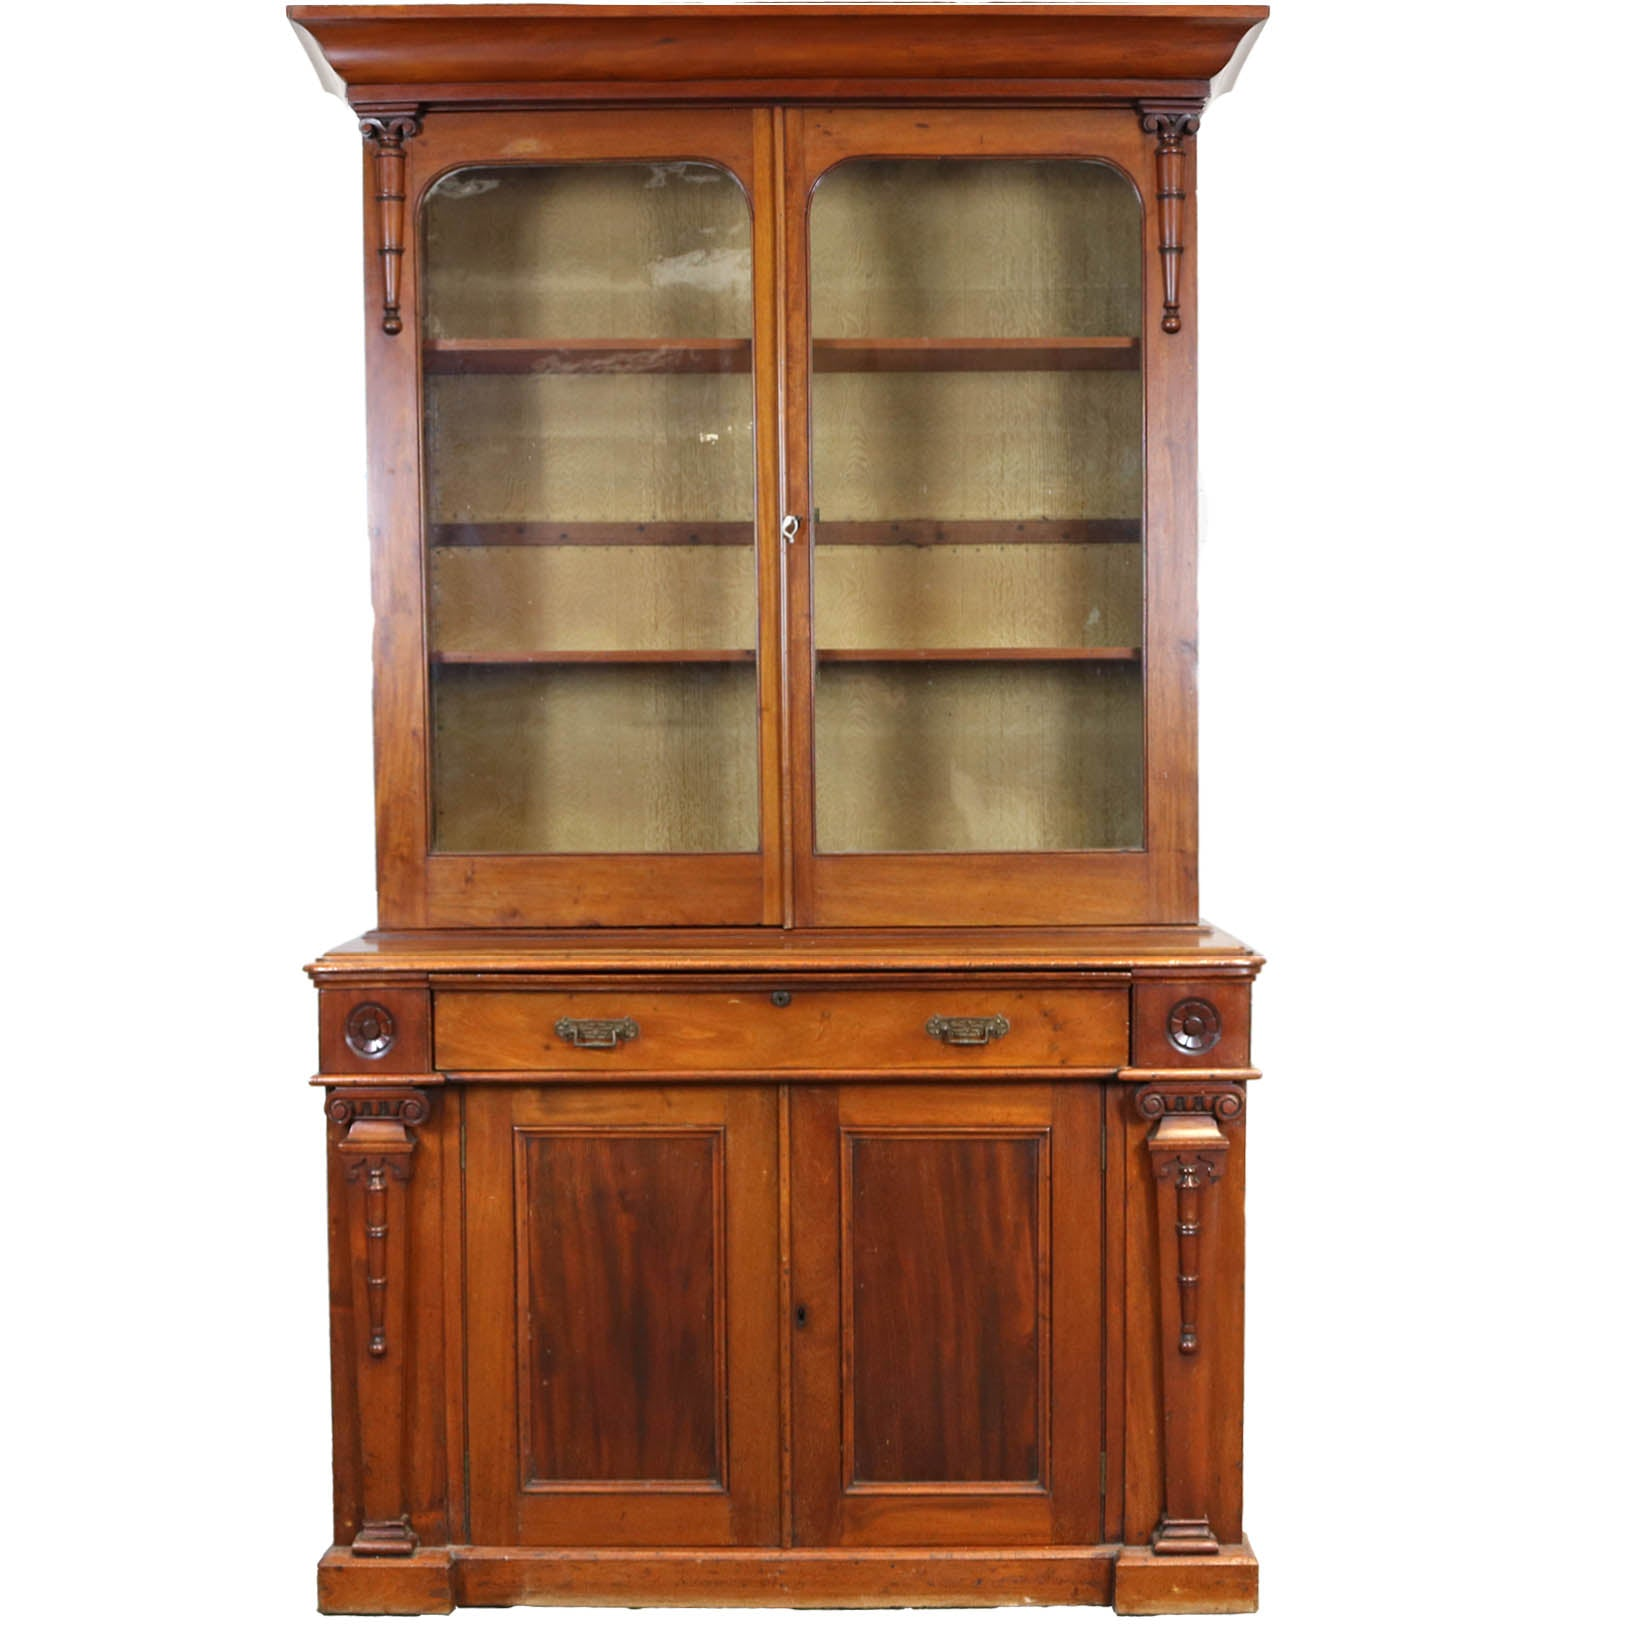 Mahogany Glass Fronted Dresser